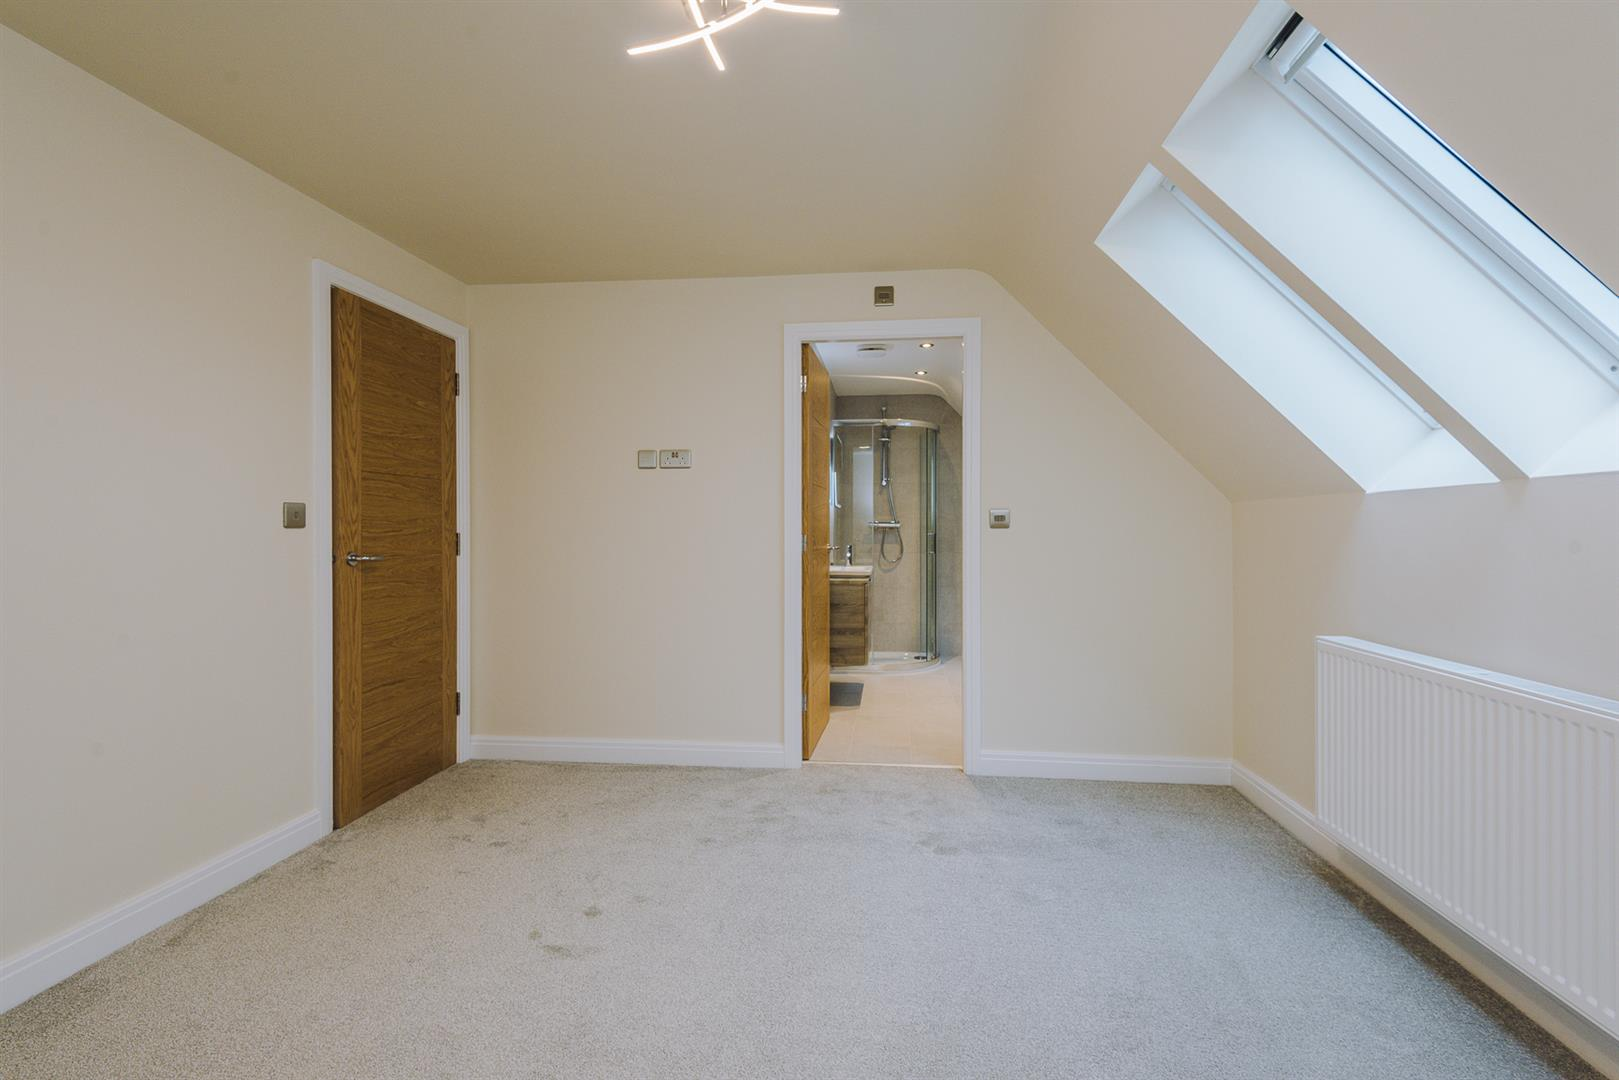 5 Bedroom House For Sale Image 30